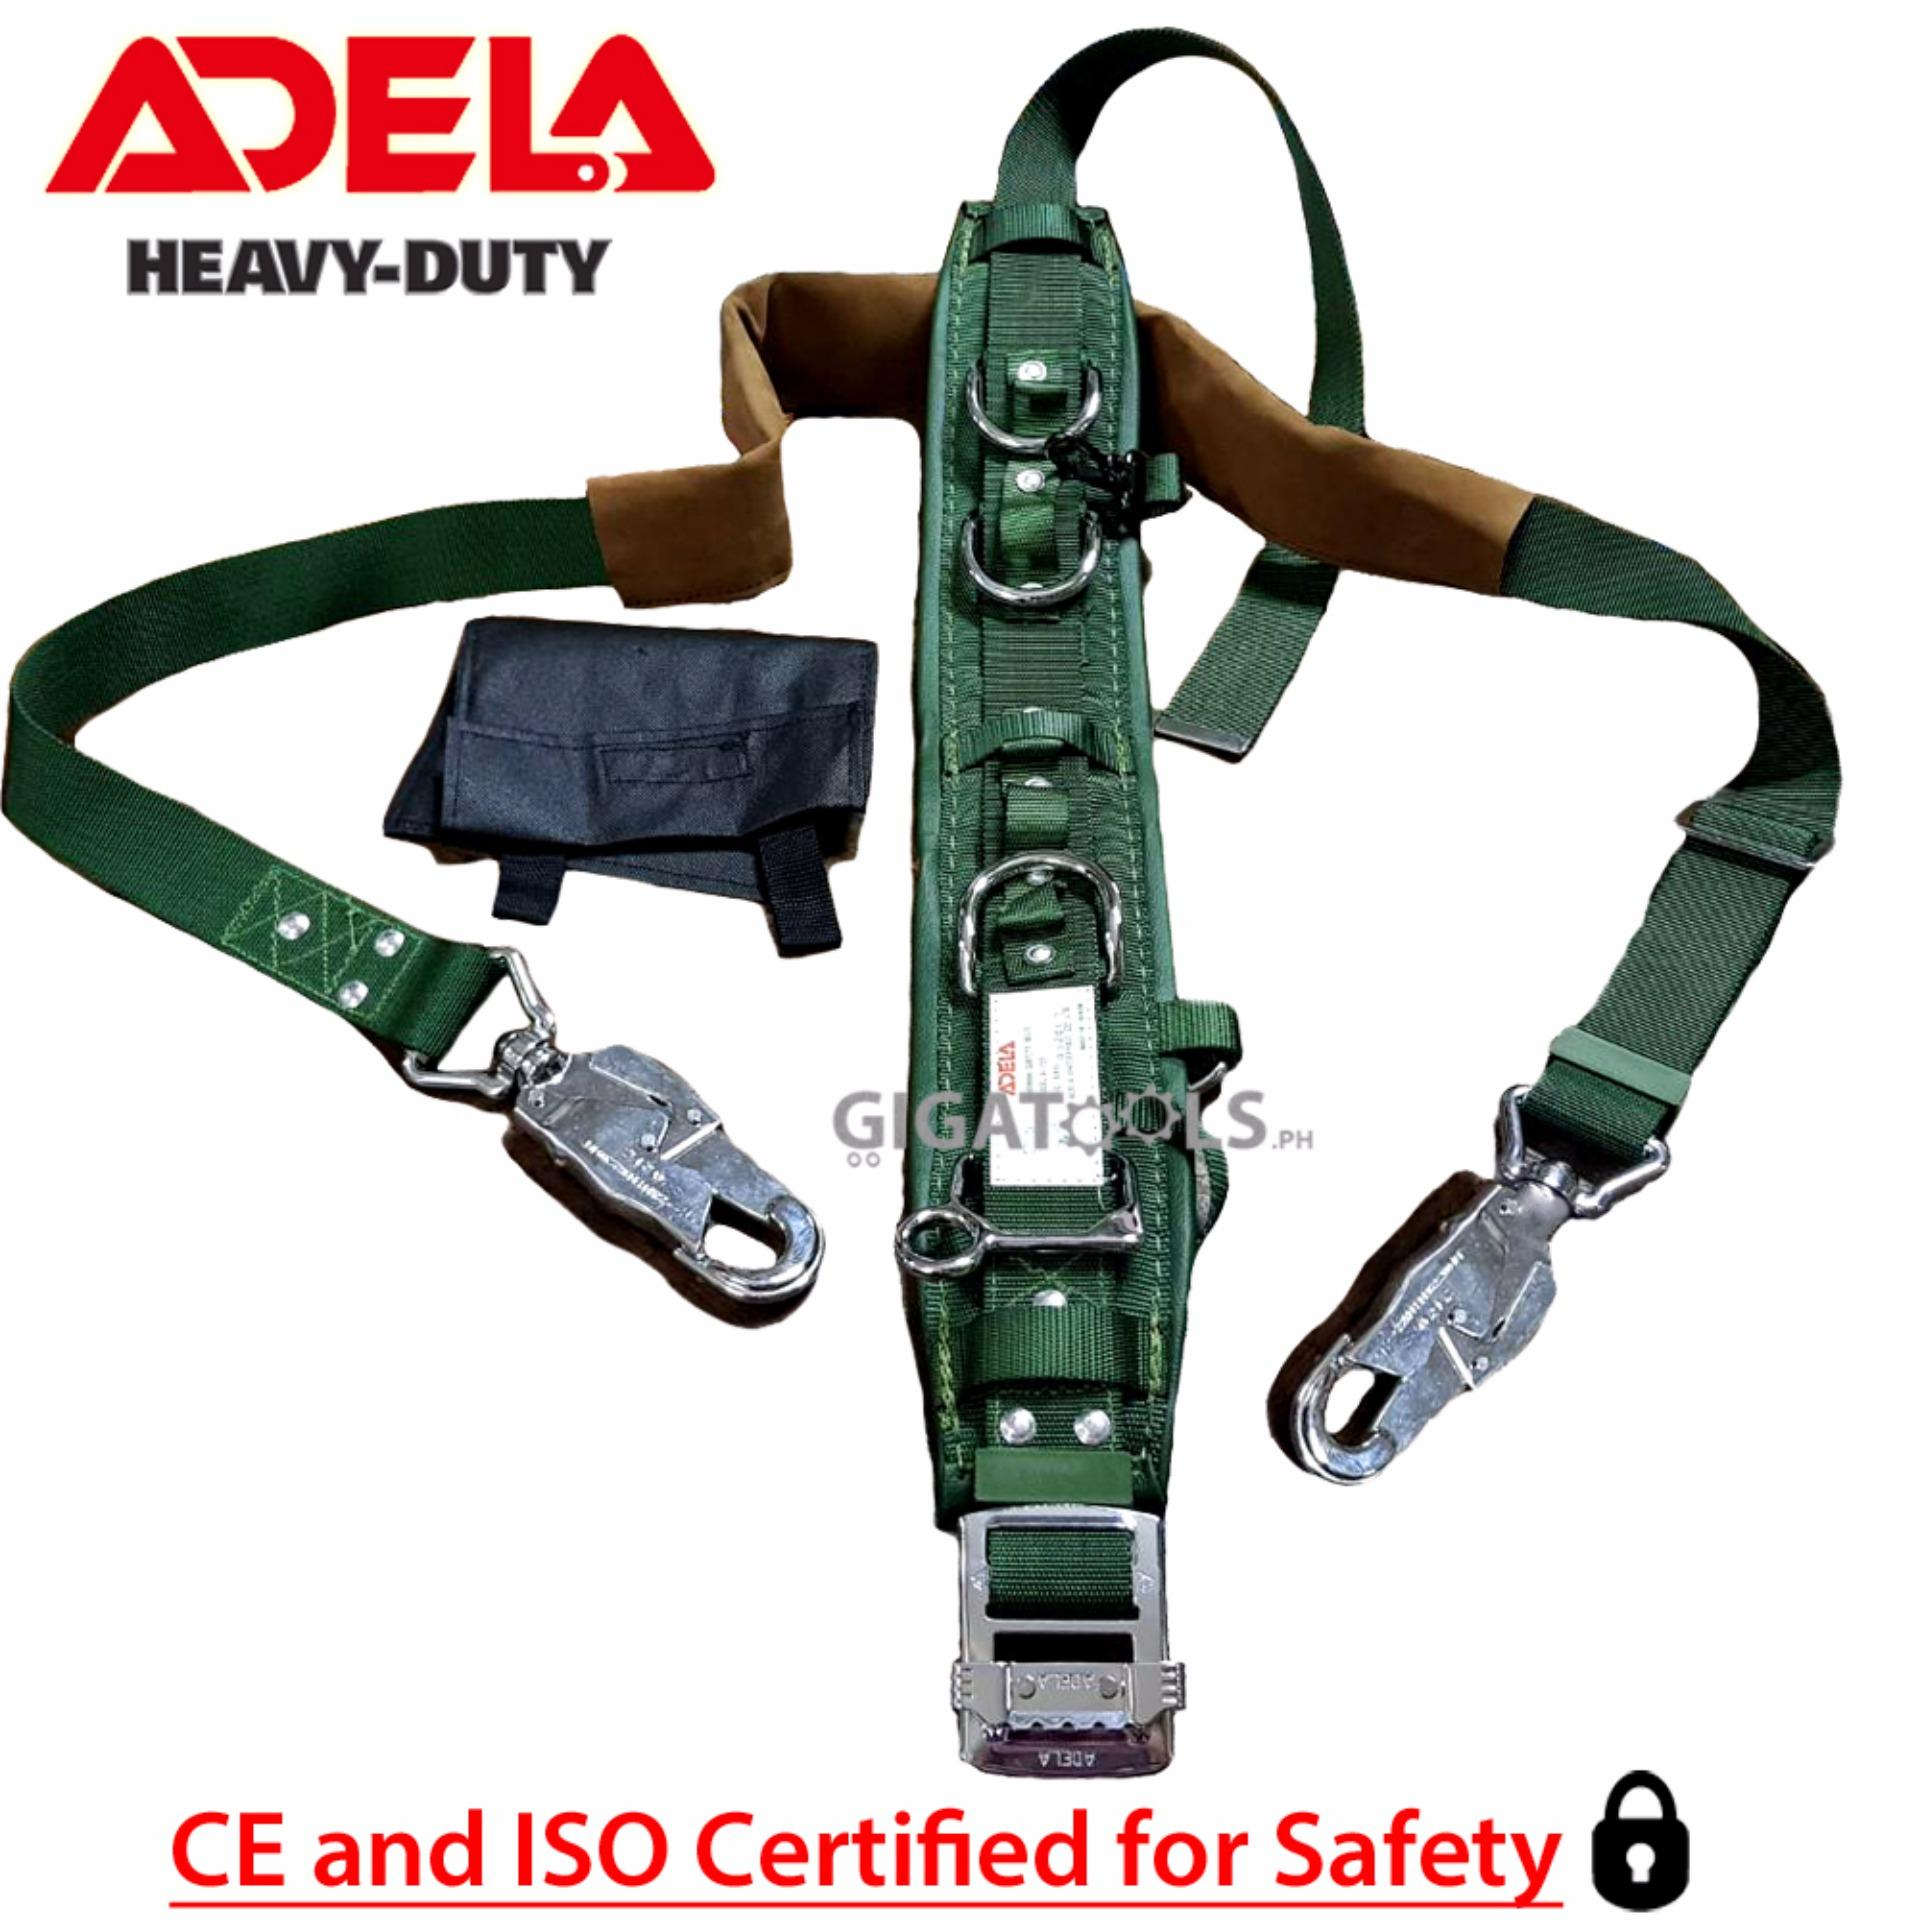 Heavy Duty Safety Harness - WIRE Center •